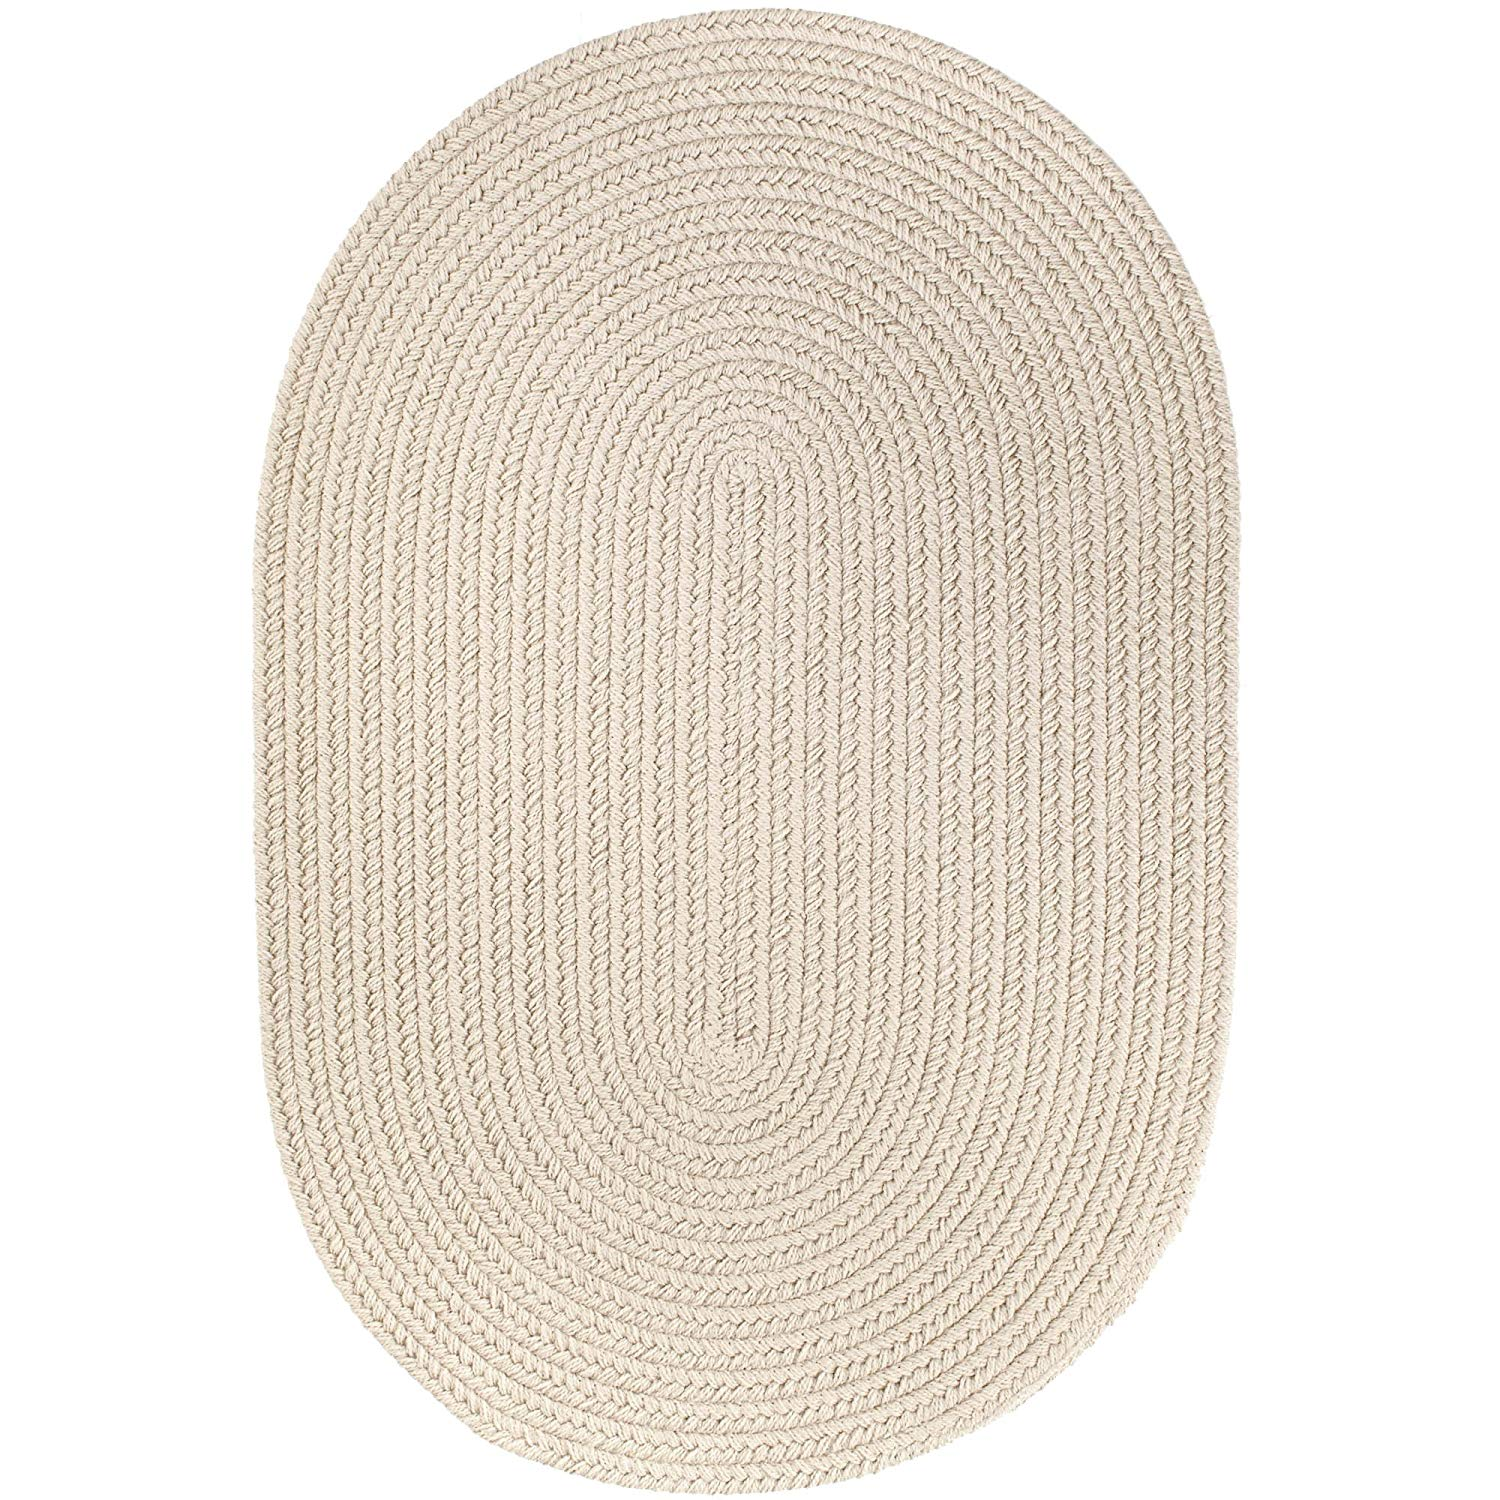 Super Area Rugs Maui Braided Rug Indoor Outdoor Rug Washable Reversible White & Ivory Patio Porch Kitchen Carpet, 10' X 13' Oval